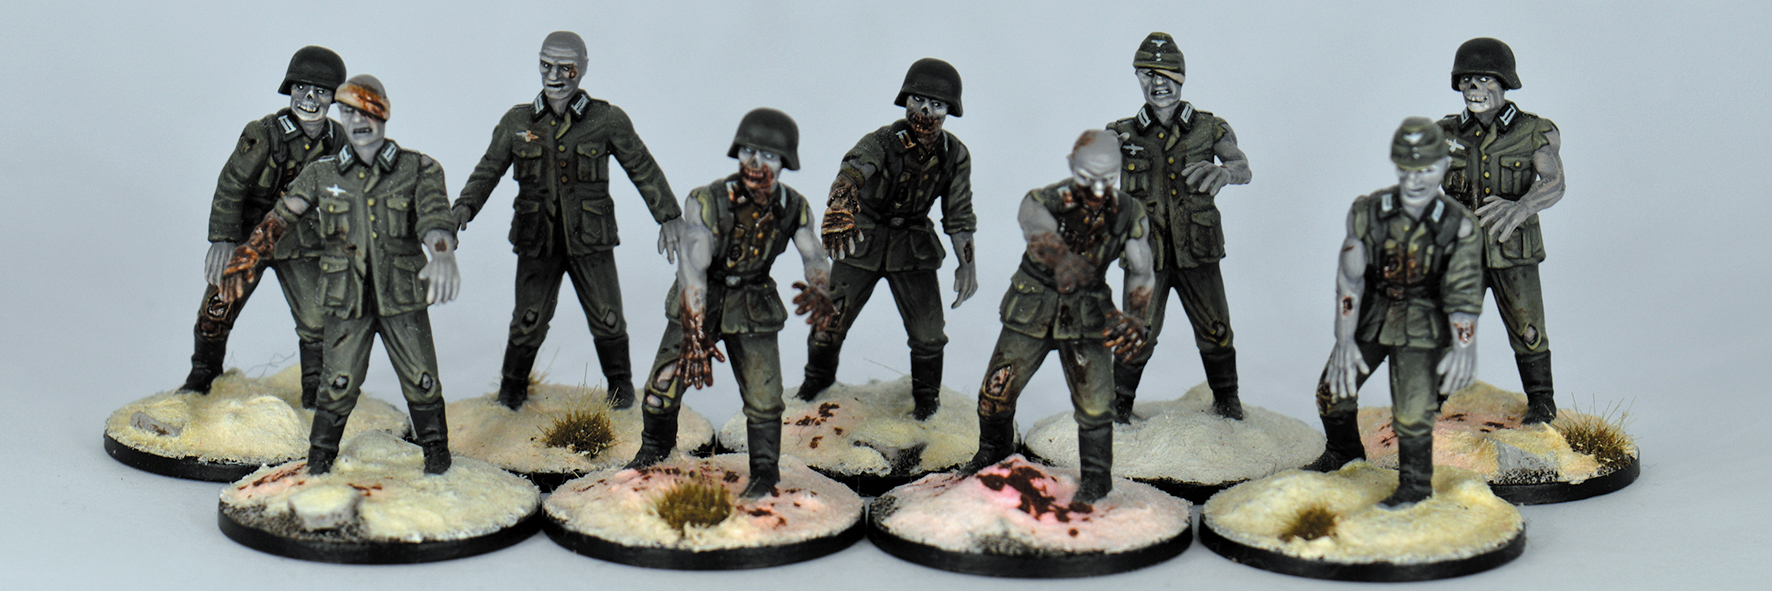 GZ01-WWII GERMAN ZOMBIES PLASTIC BOXSET - 20 MINIATURES